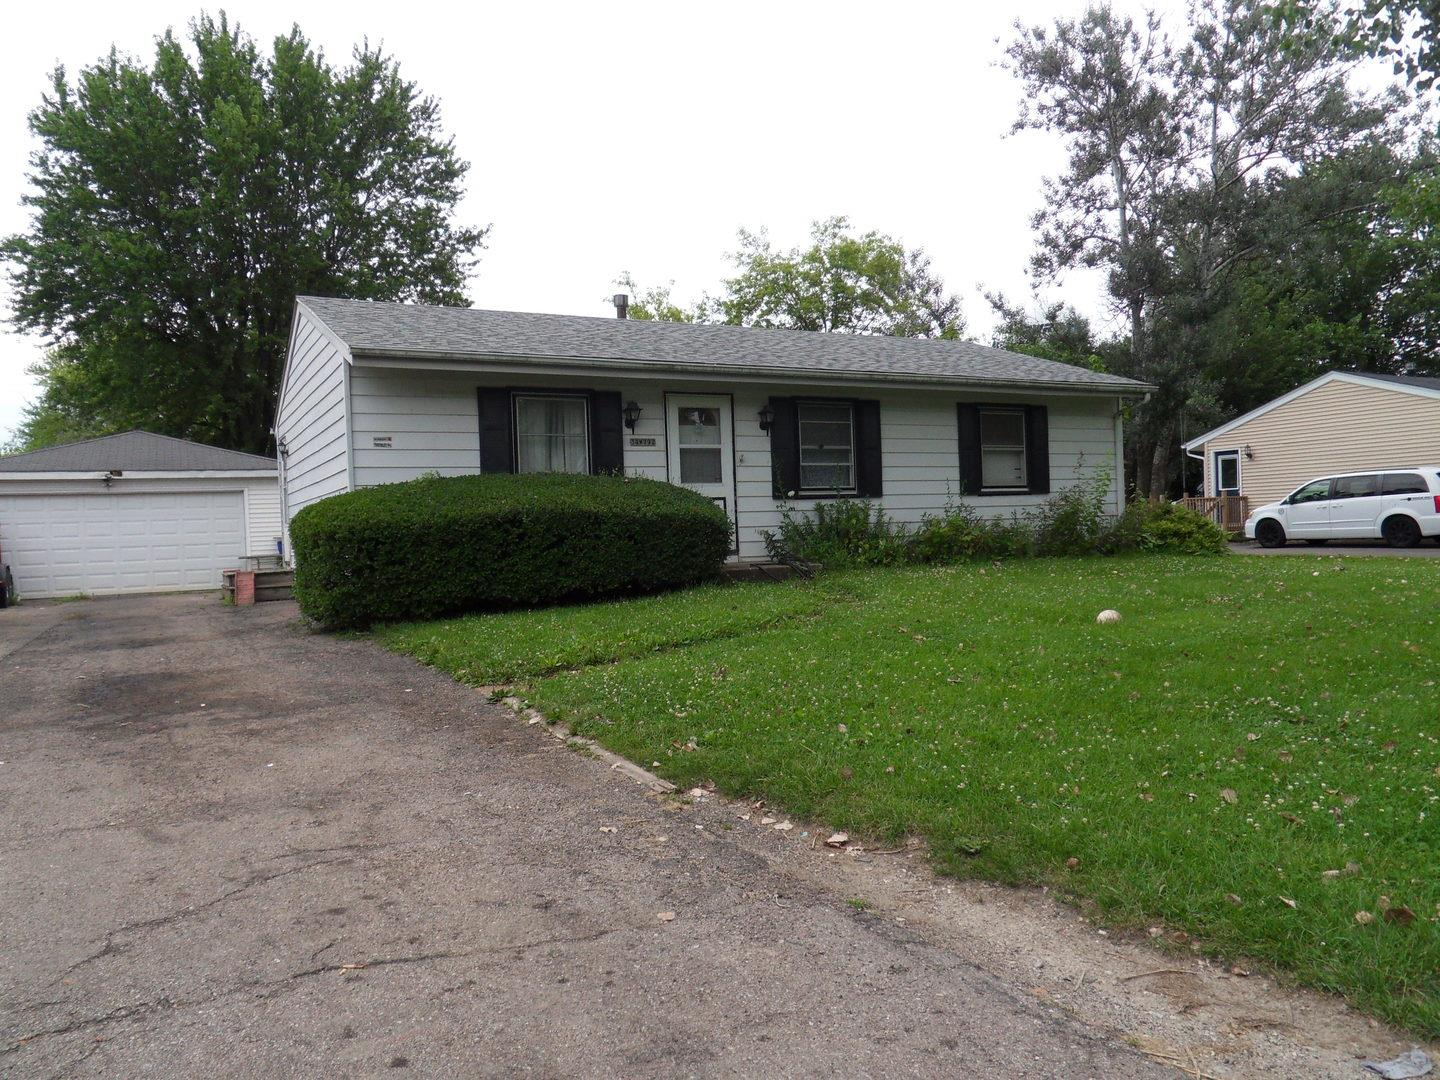 34W792 S JAMES Drive, Saint Charles, IL 60174 - #: 10790340